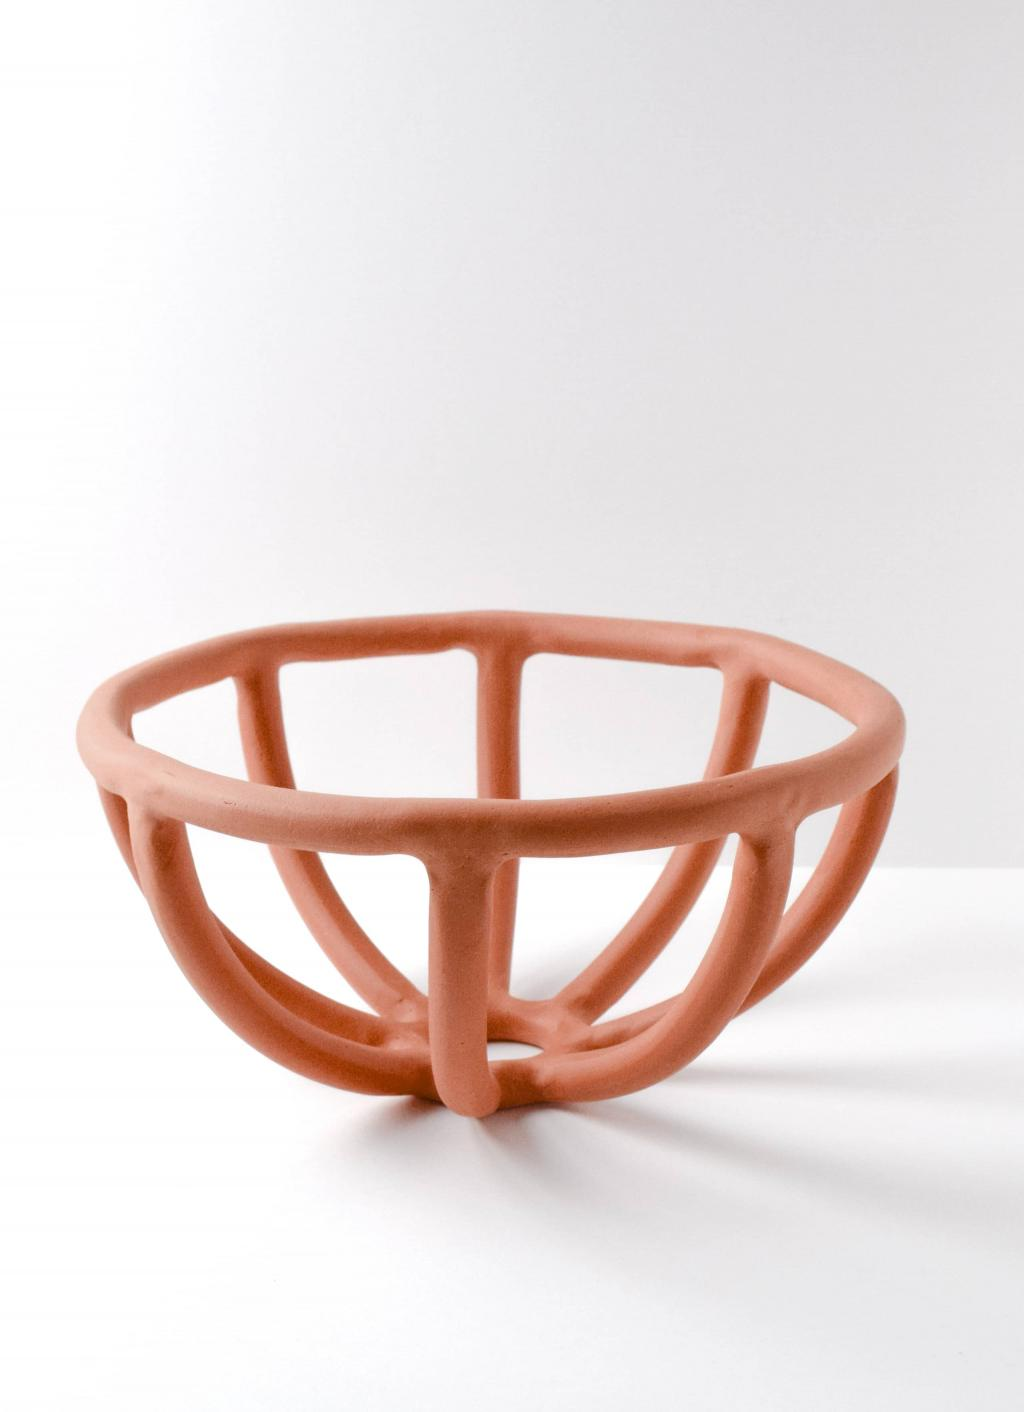 Sin - Prong Fruit Bowl - Handmade Stoneware - Terracotta